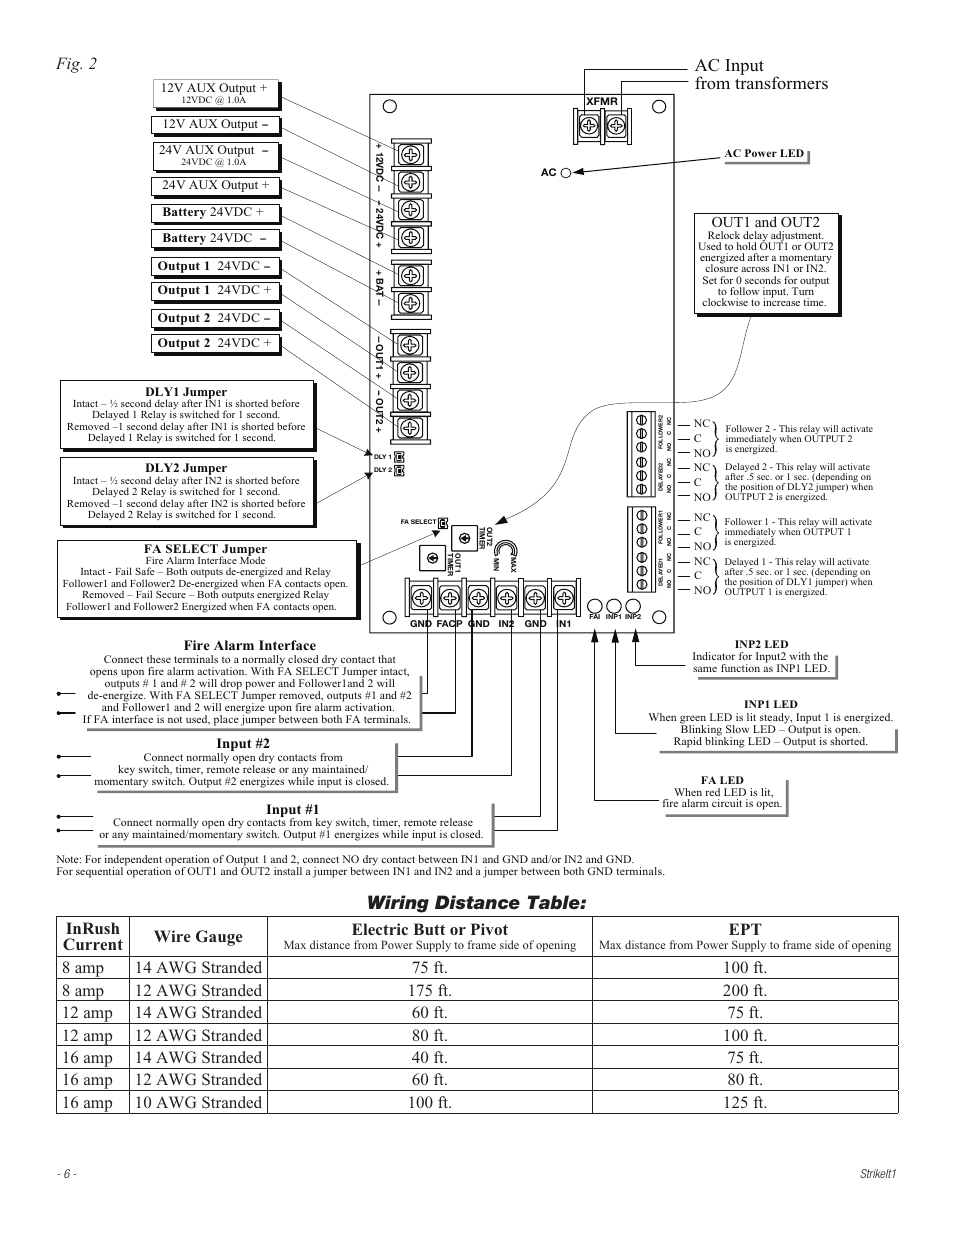 medium resolution of  wiring distance table ac input from transformers fig 2 altronix on relay